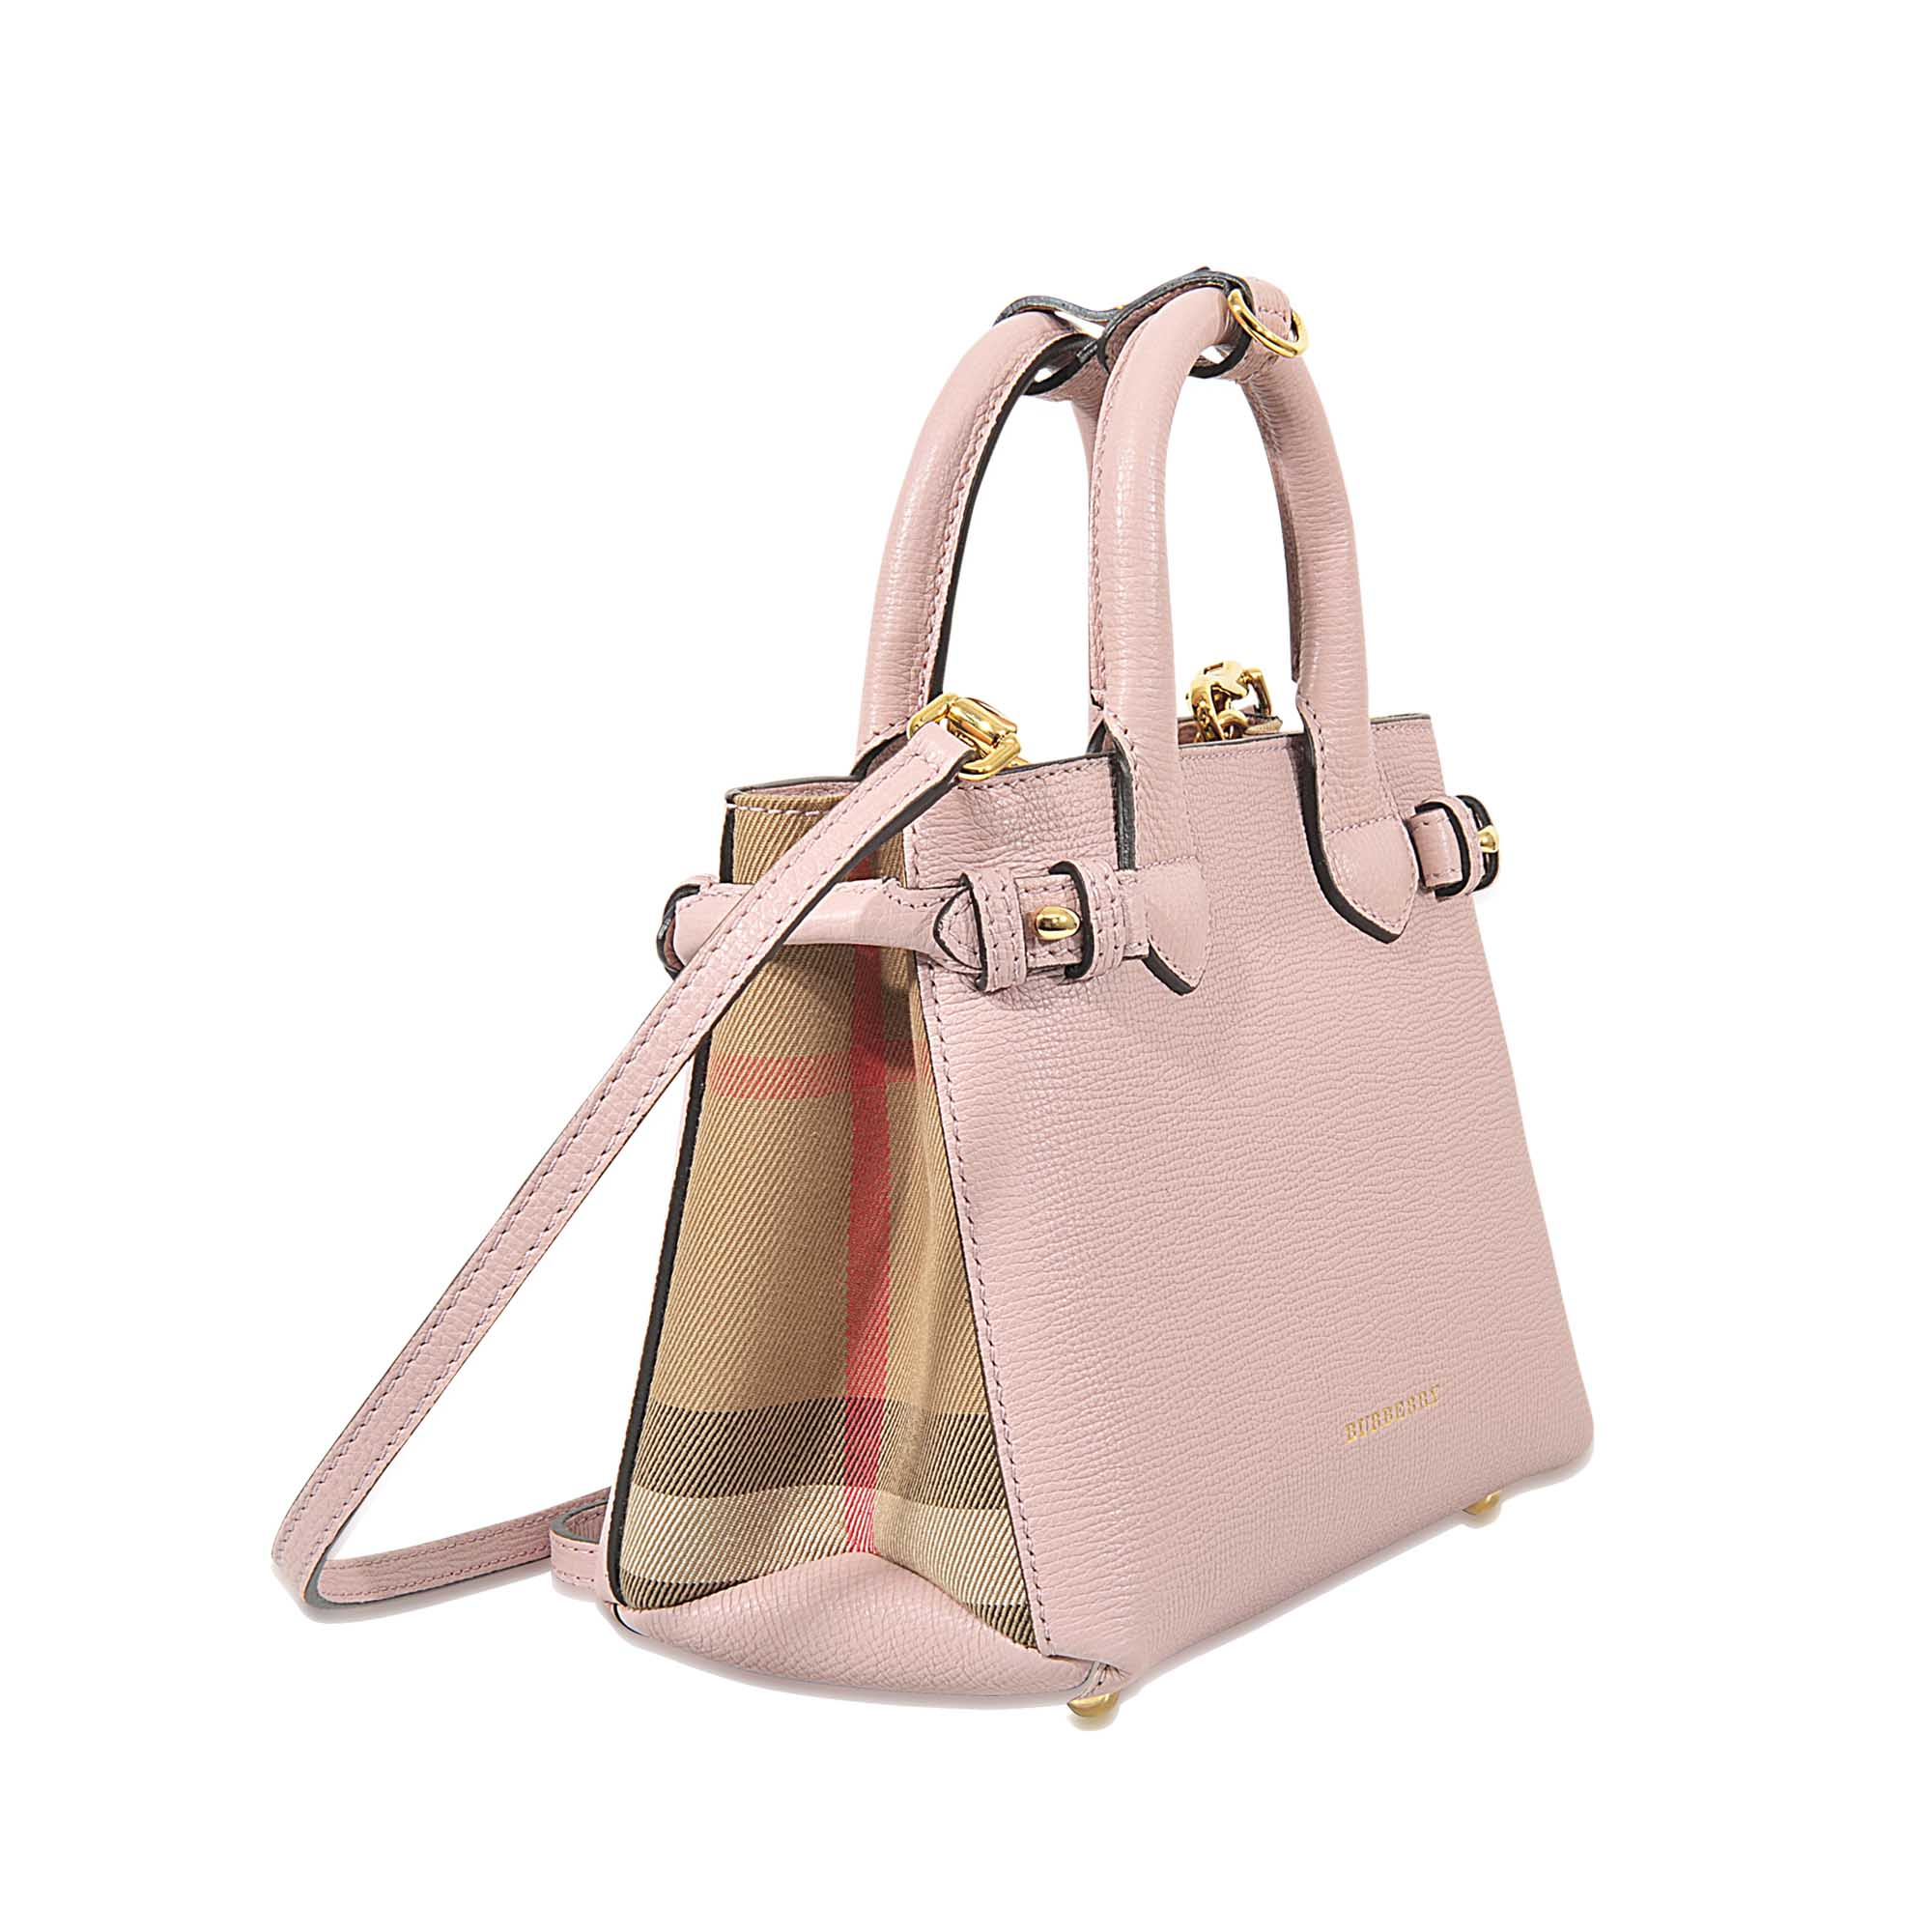 Lyst - Burberry Baby Banner Bag in Pink 9408046a79047